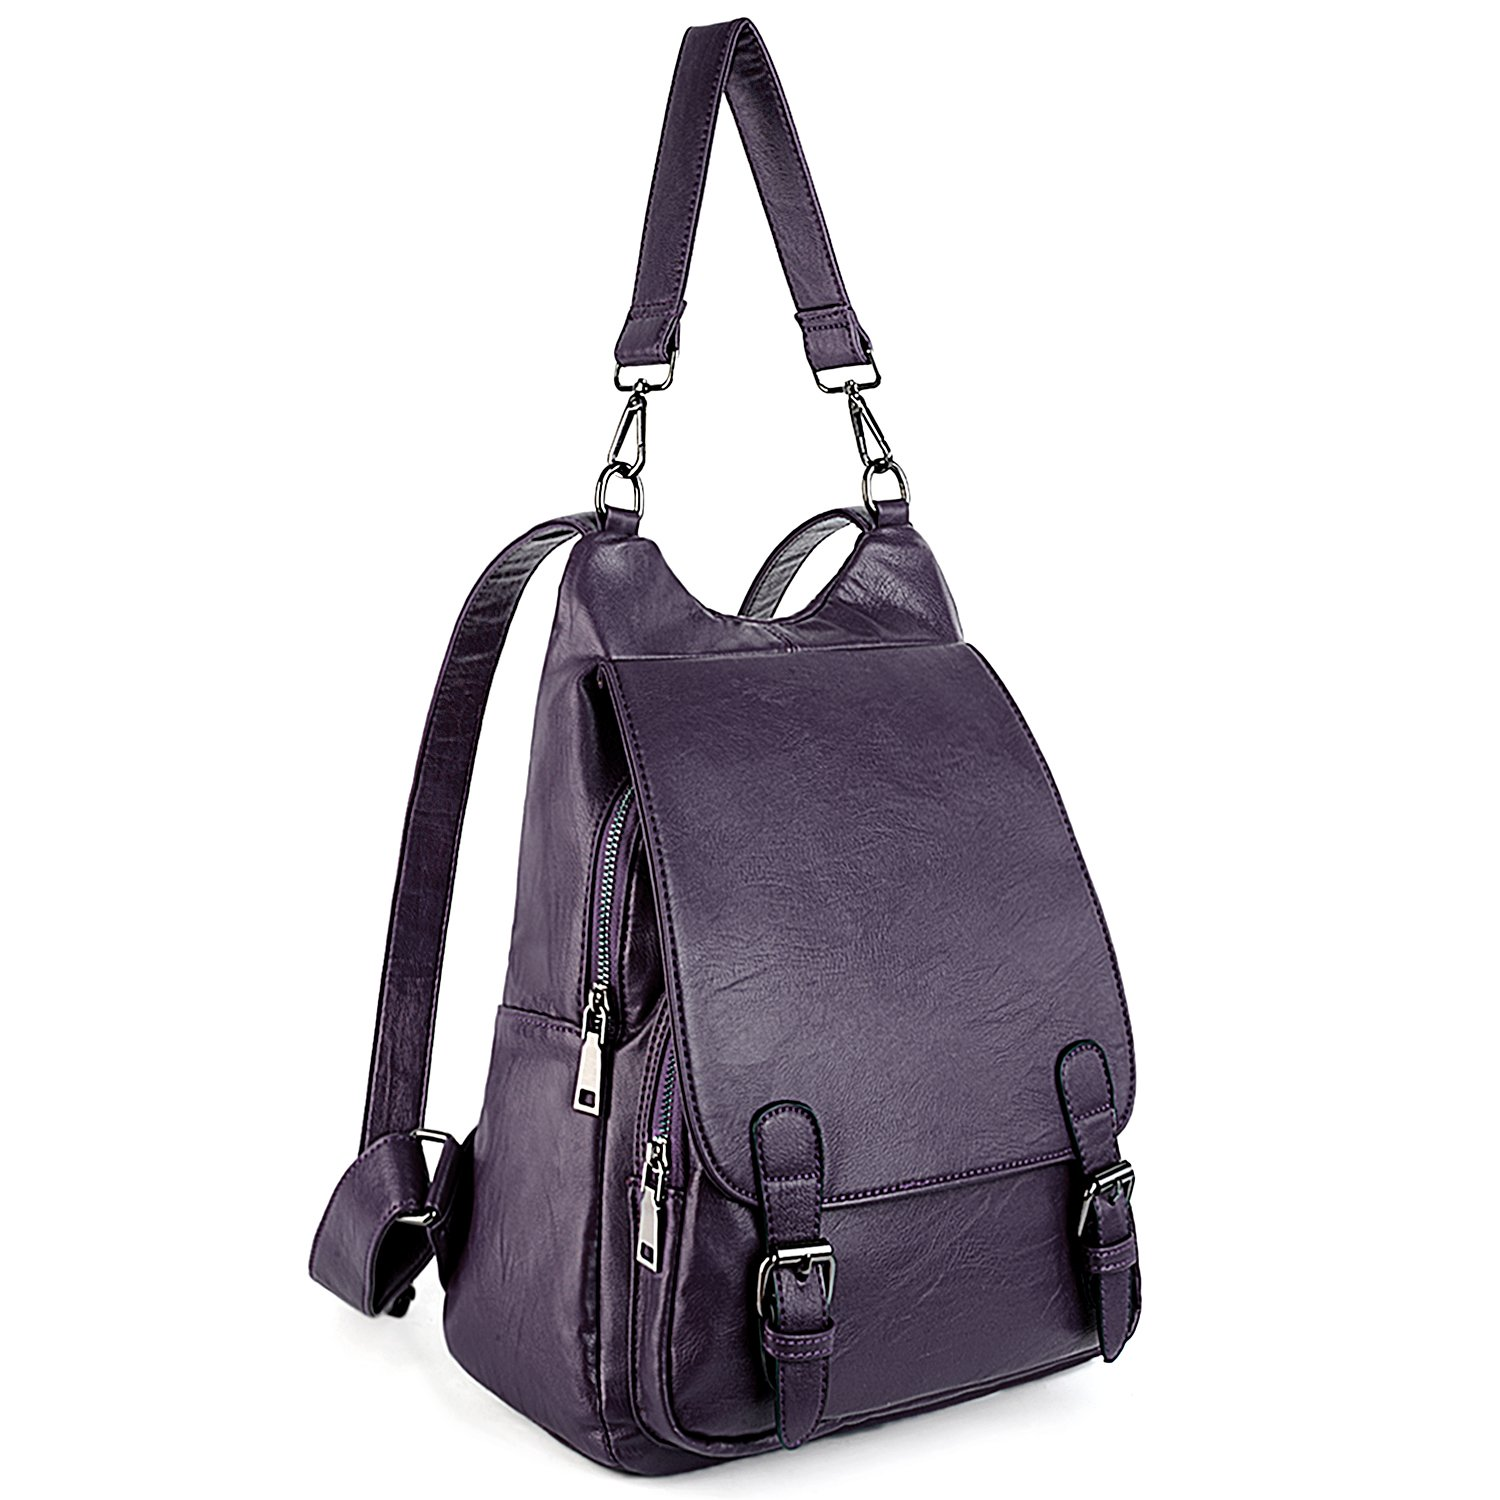 UTO Women Backpack Purse PU Washed Leather Large Capacity Security Ladies Rucksack Shoulder Bag Purple C